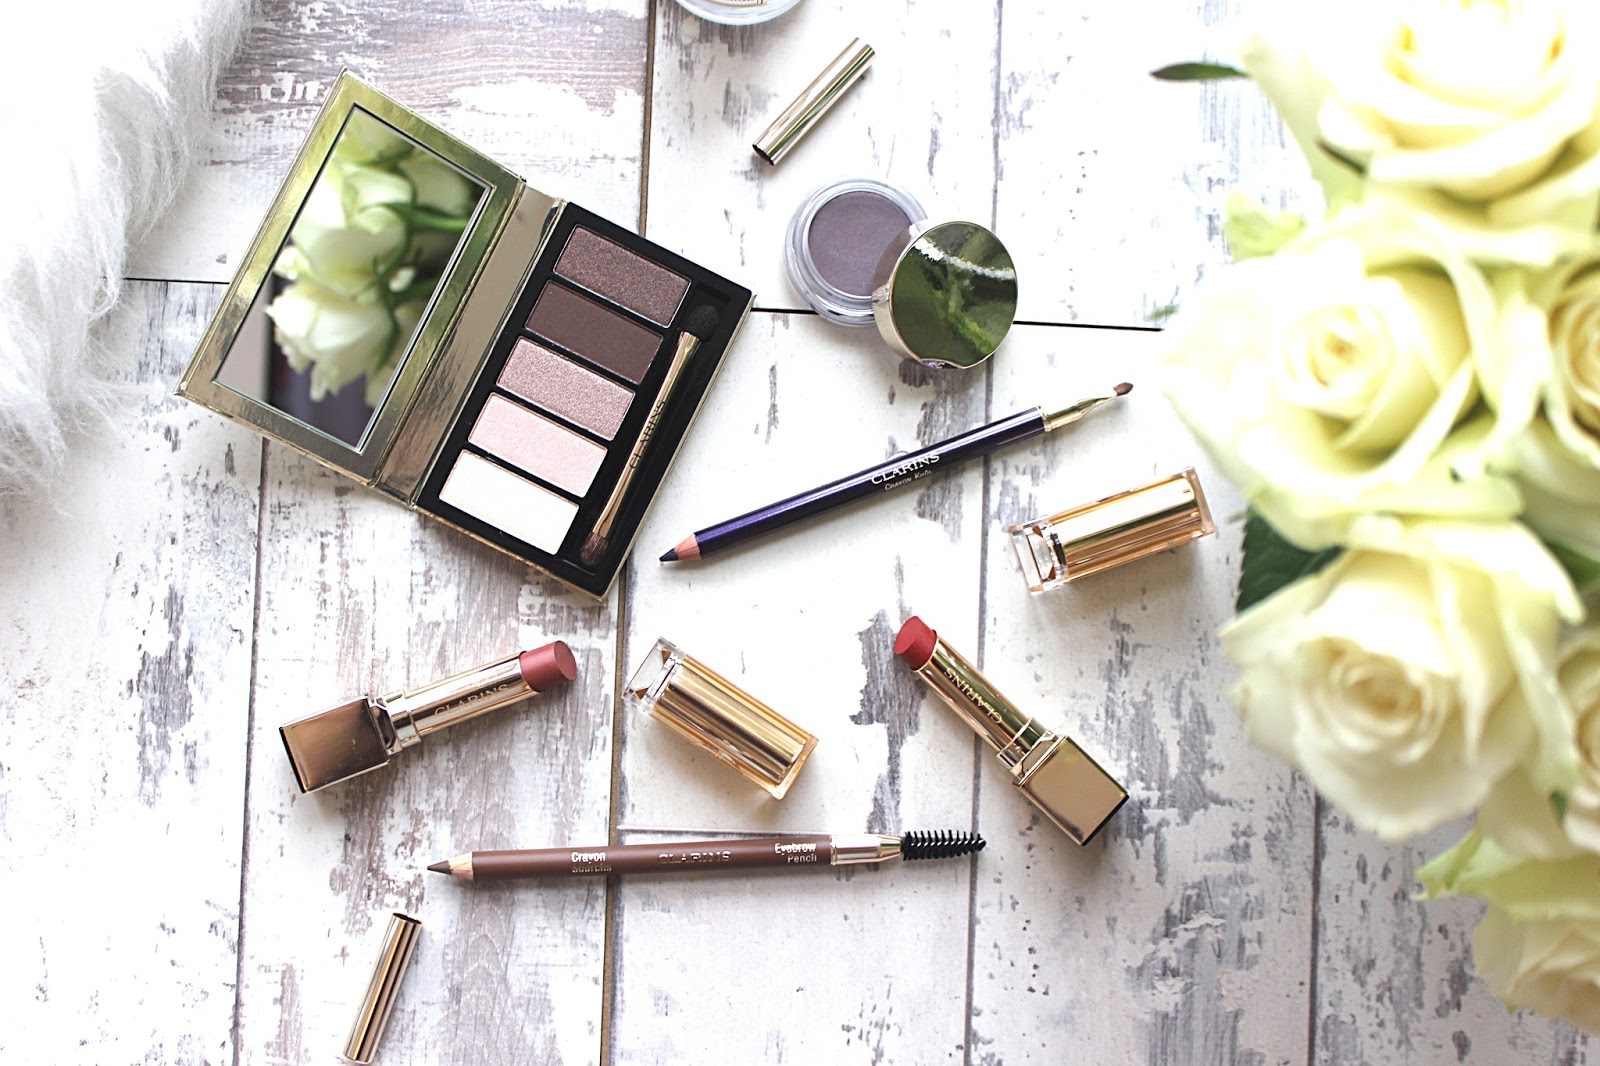 Clarins Autumn 2015 Collection